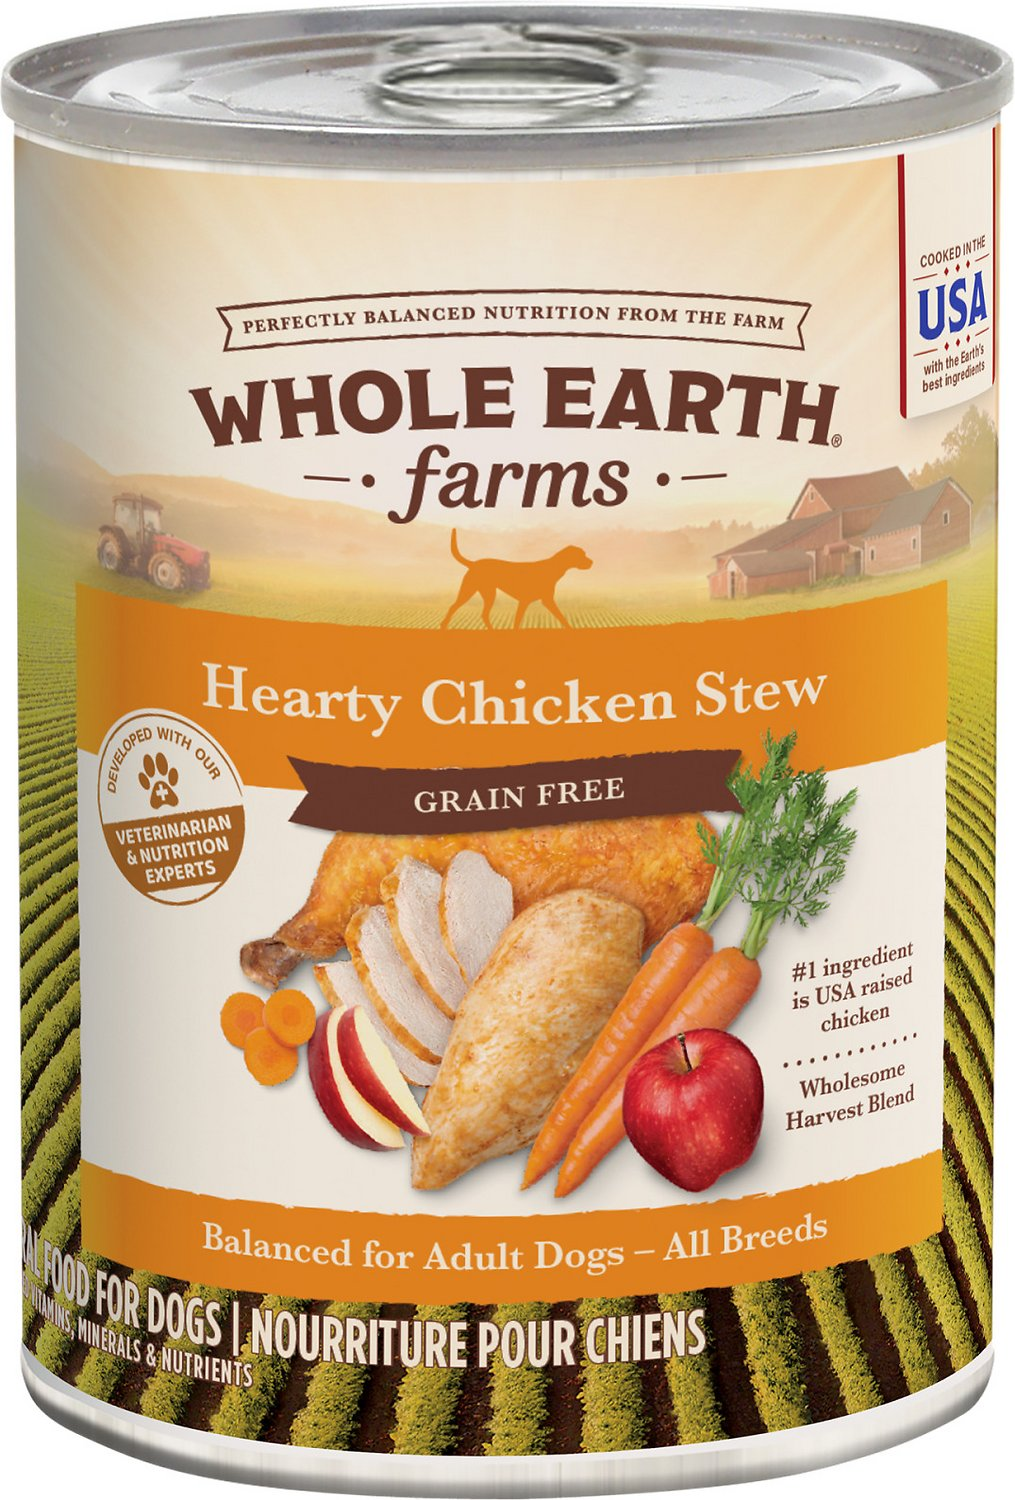 Whole Earth Canned Dog Food